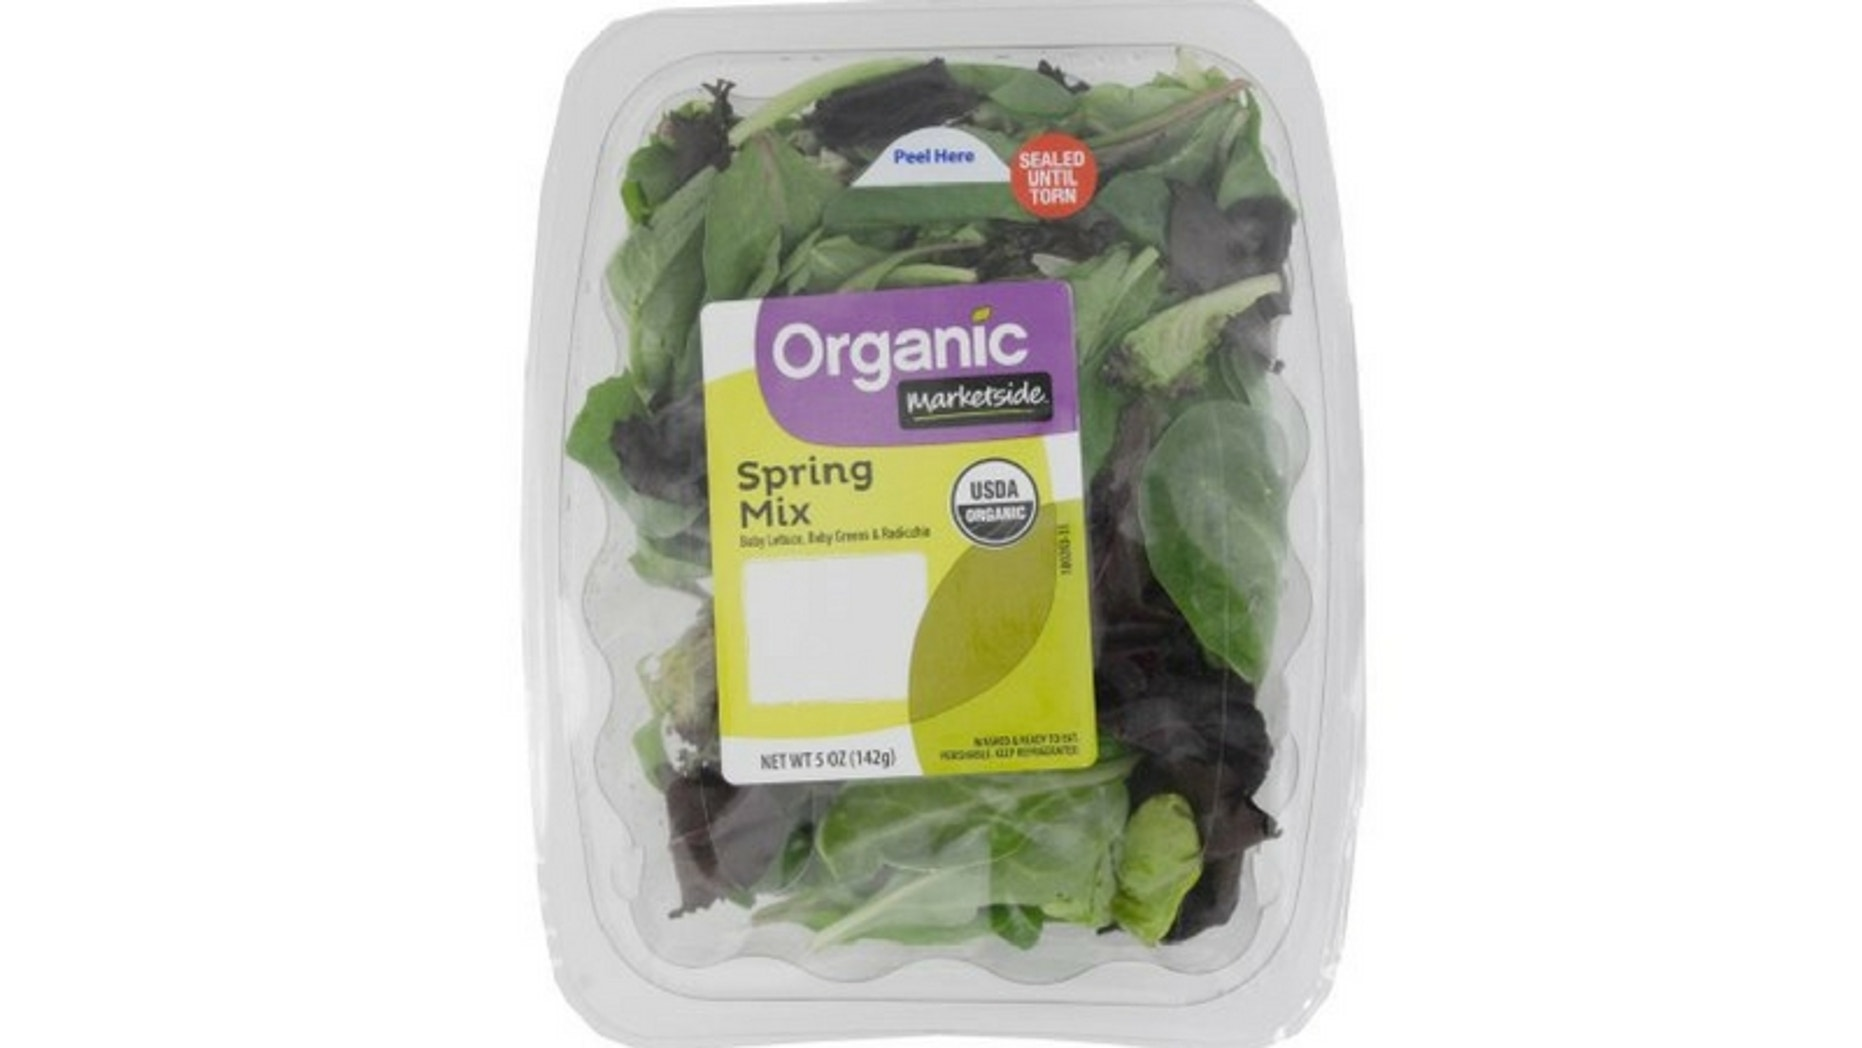 Fresh Express recalled its Organic Marketside Spring Mix after a two people found a dead bat in one of its packages, the CDC said. (Walmart)